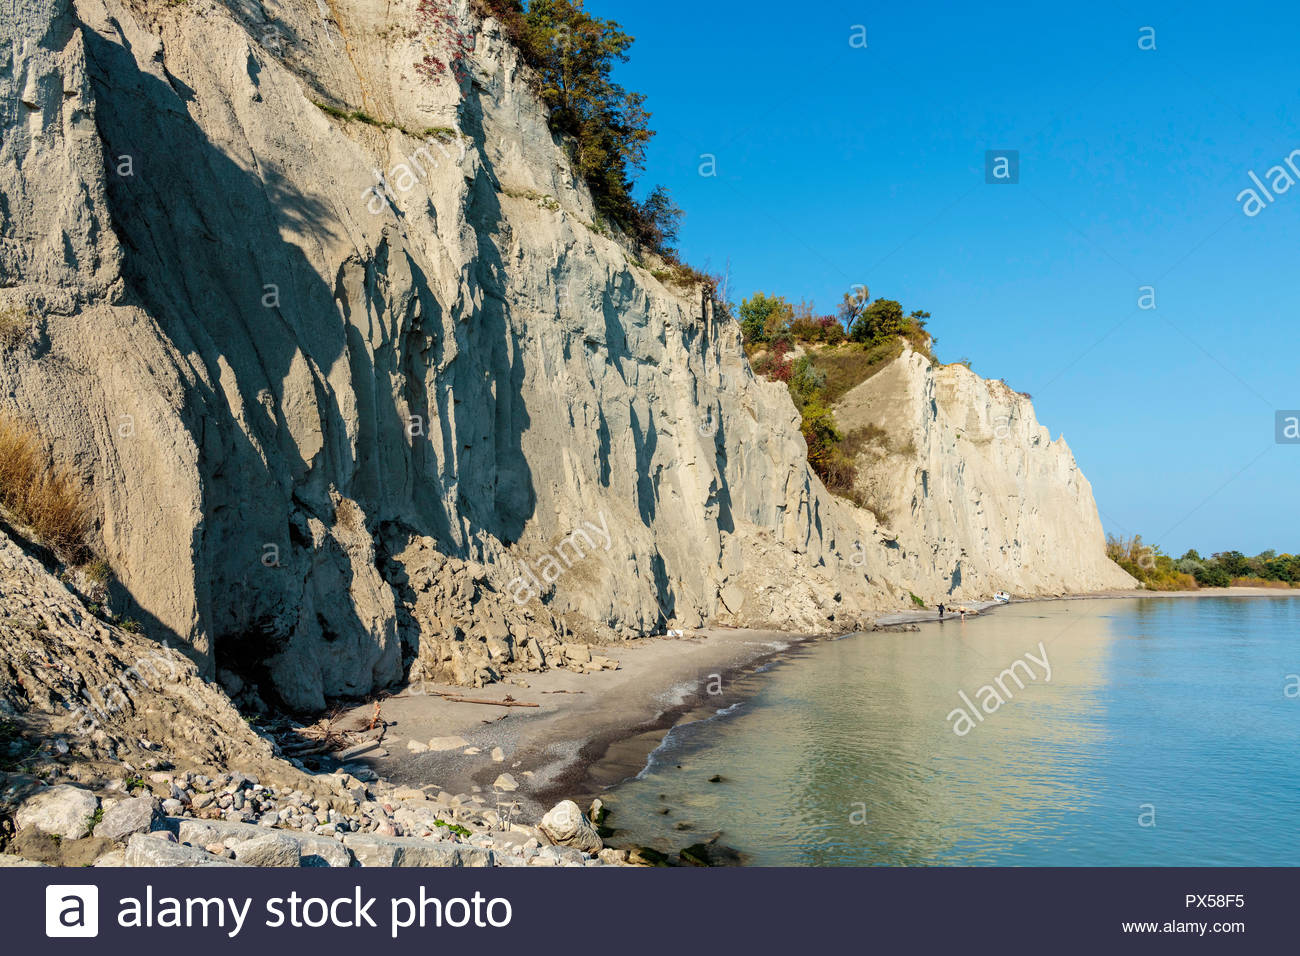 Scarborough Bluffs an alluvial deposit on the edge of Lake Ontario at Bluffer's Park in Toronto Ontario Canada - Stock Image